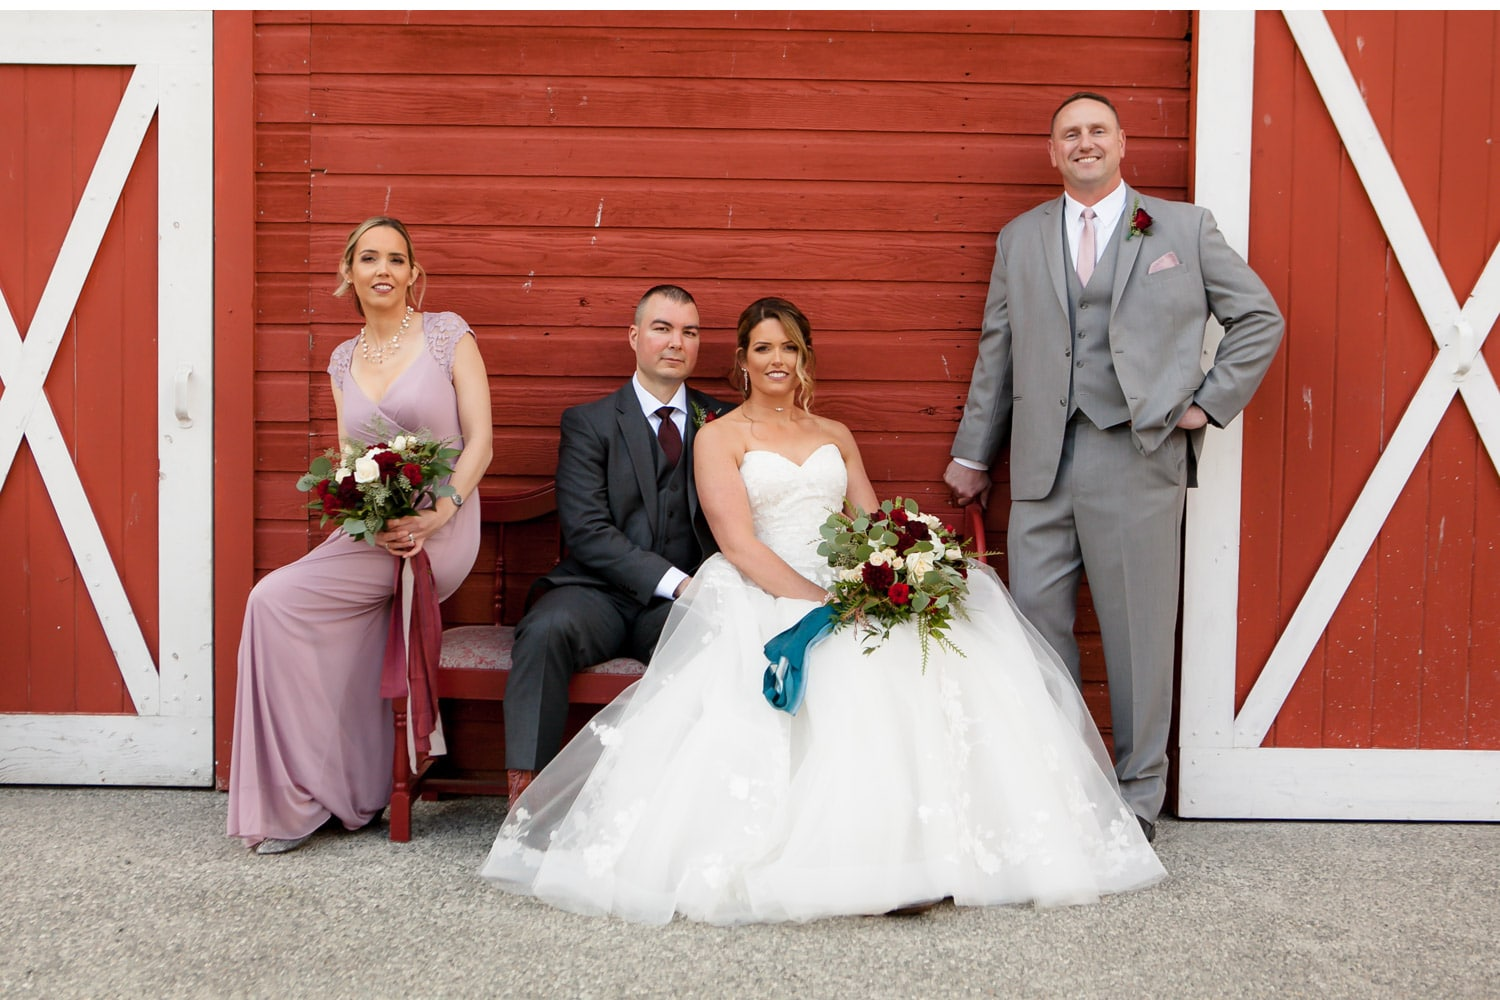 marionfield farm wedding photo skagit venue barn wedding